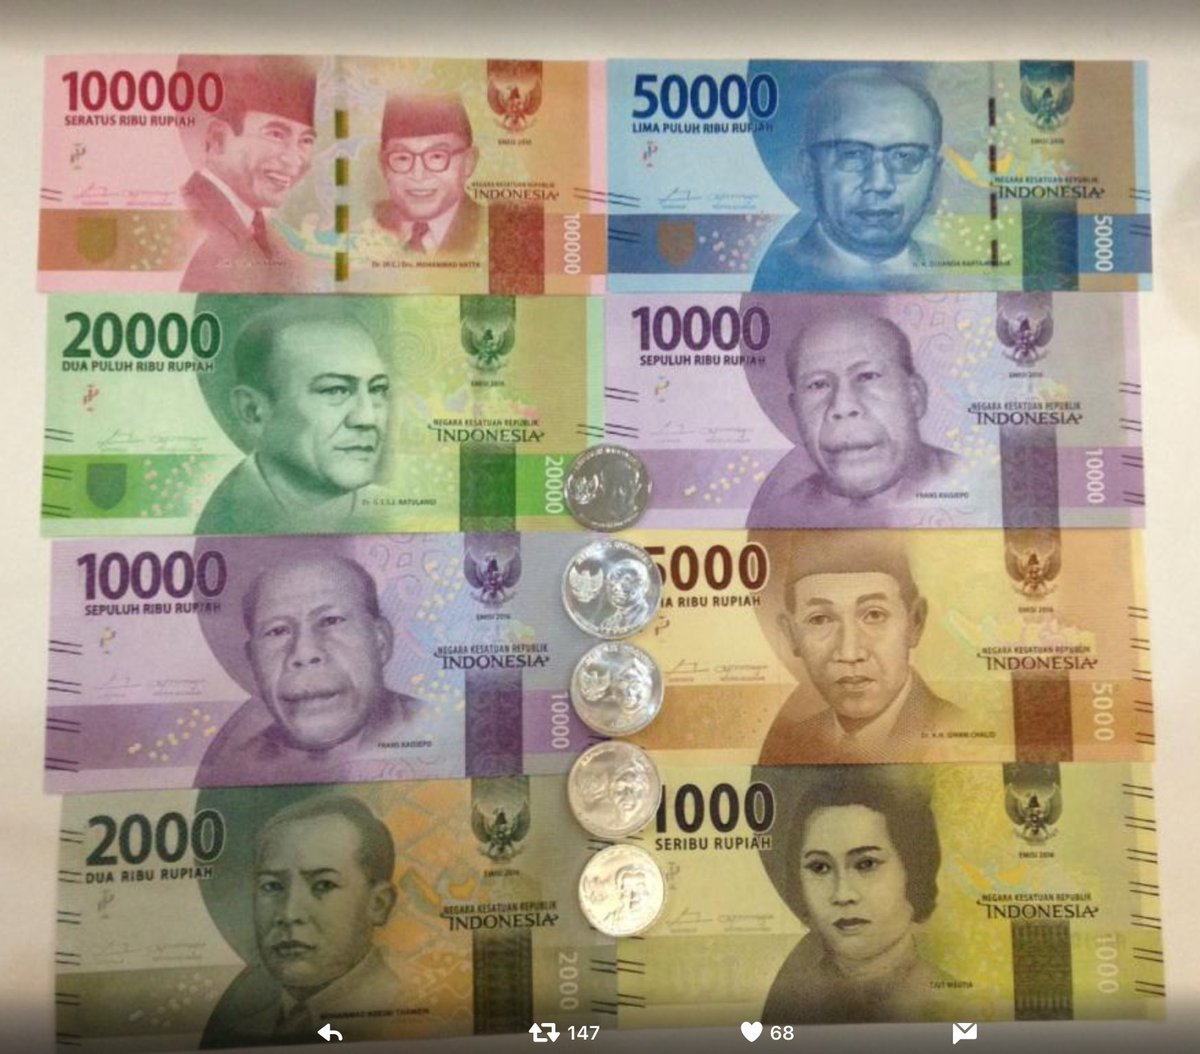 Uangbarusemangatbaru Hashtag On Twitter Cash Pb 20000 1 Reply 0 Retweets Likes